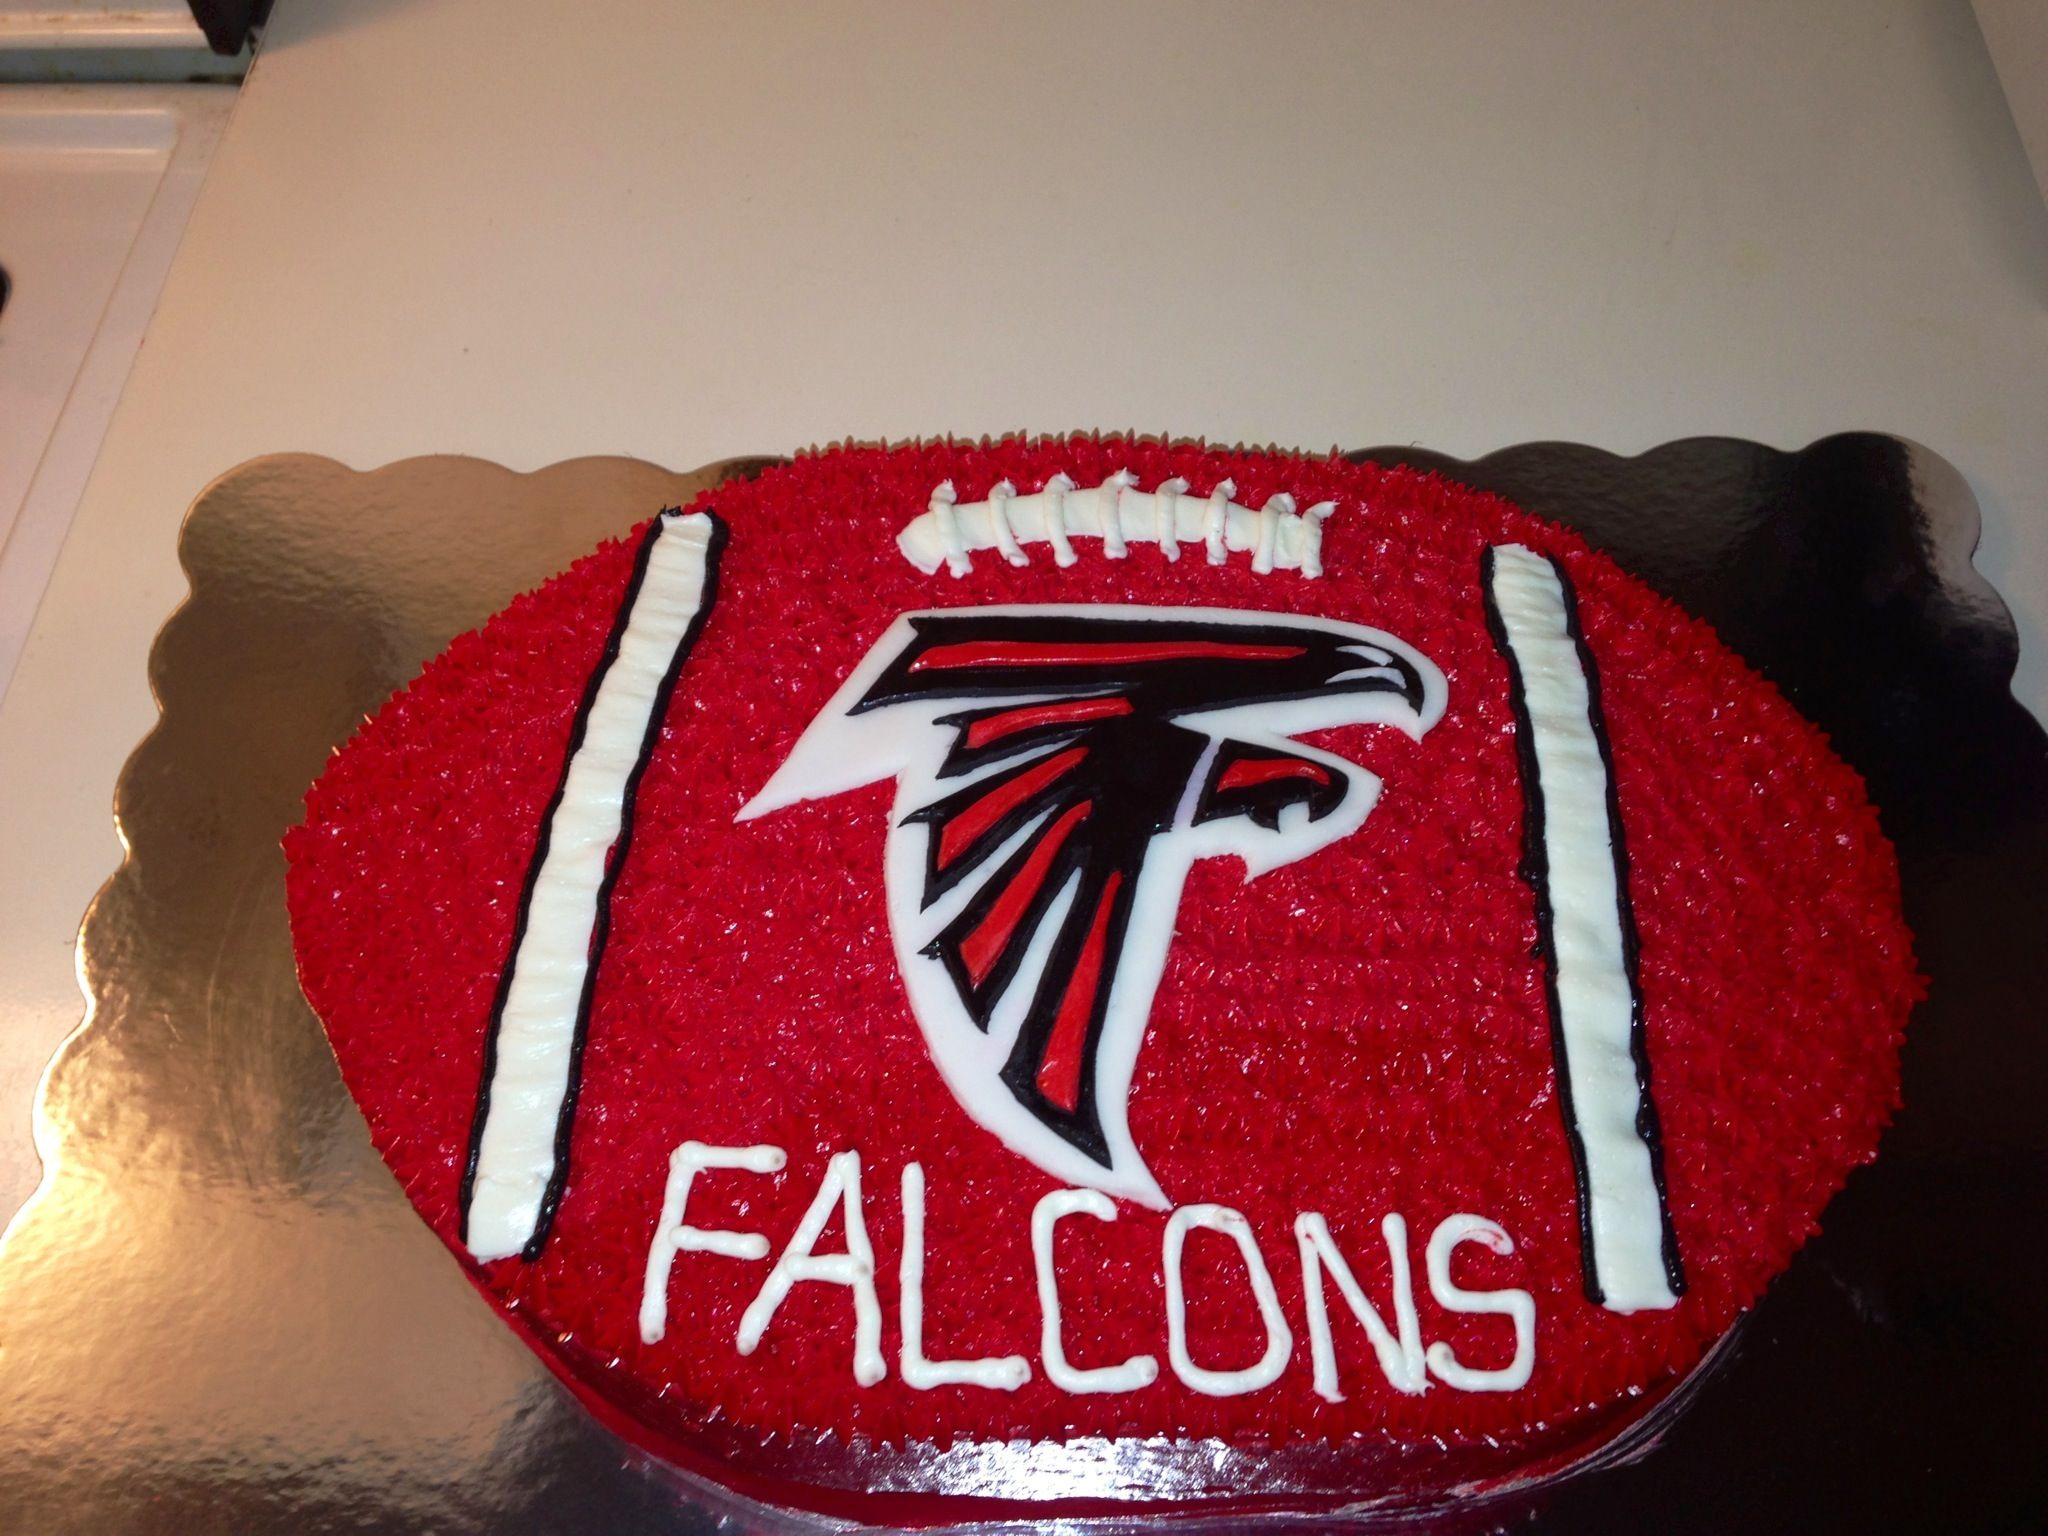 Grooms Cake Atl Logo And Football Shape Falcons Cake Falcons Football Cake Atlanta Falcons Cake